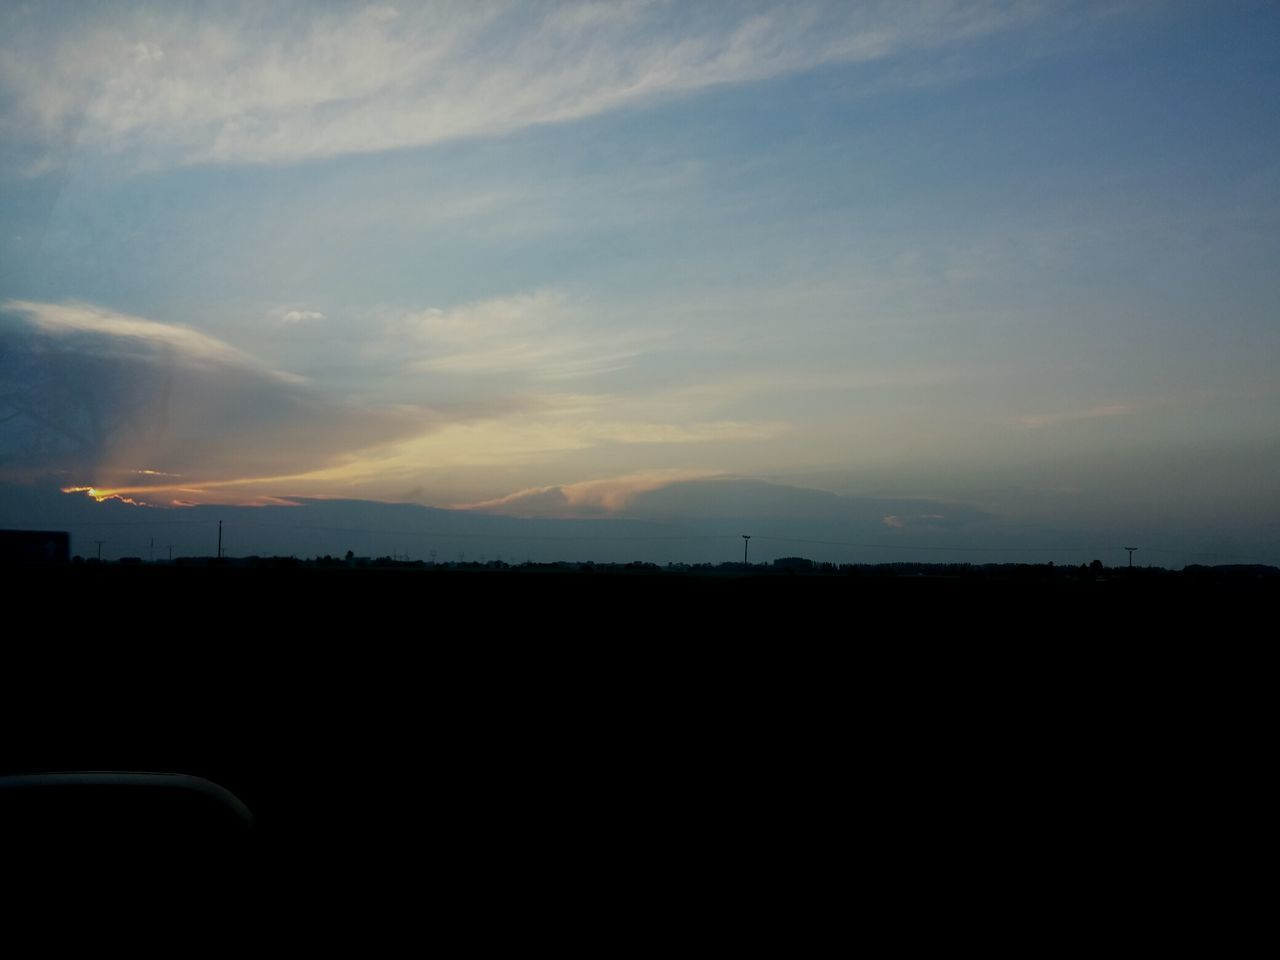 Silhouette View Of Landscape At Sunset